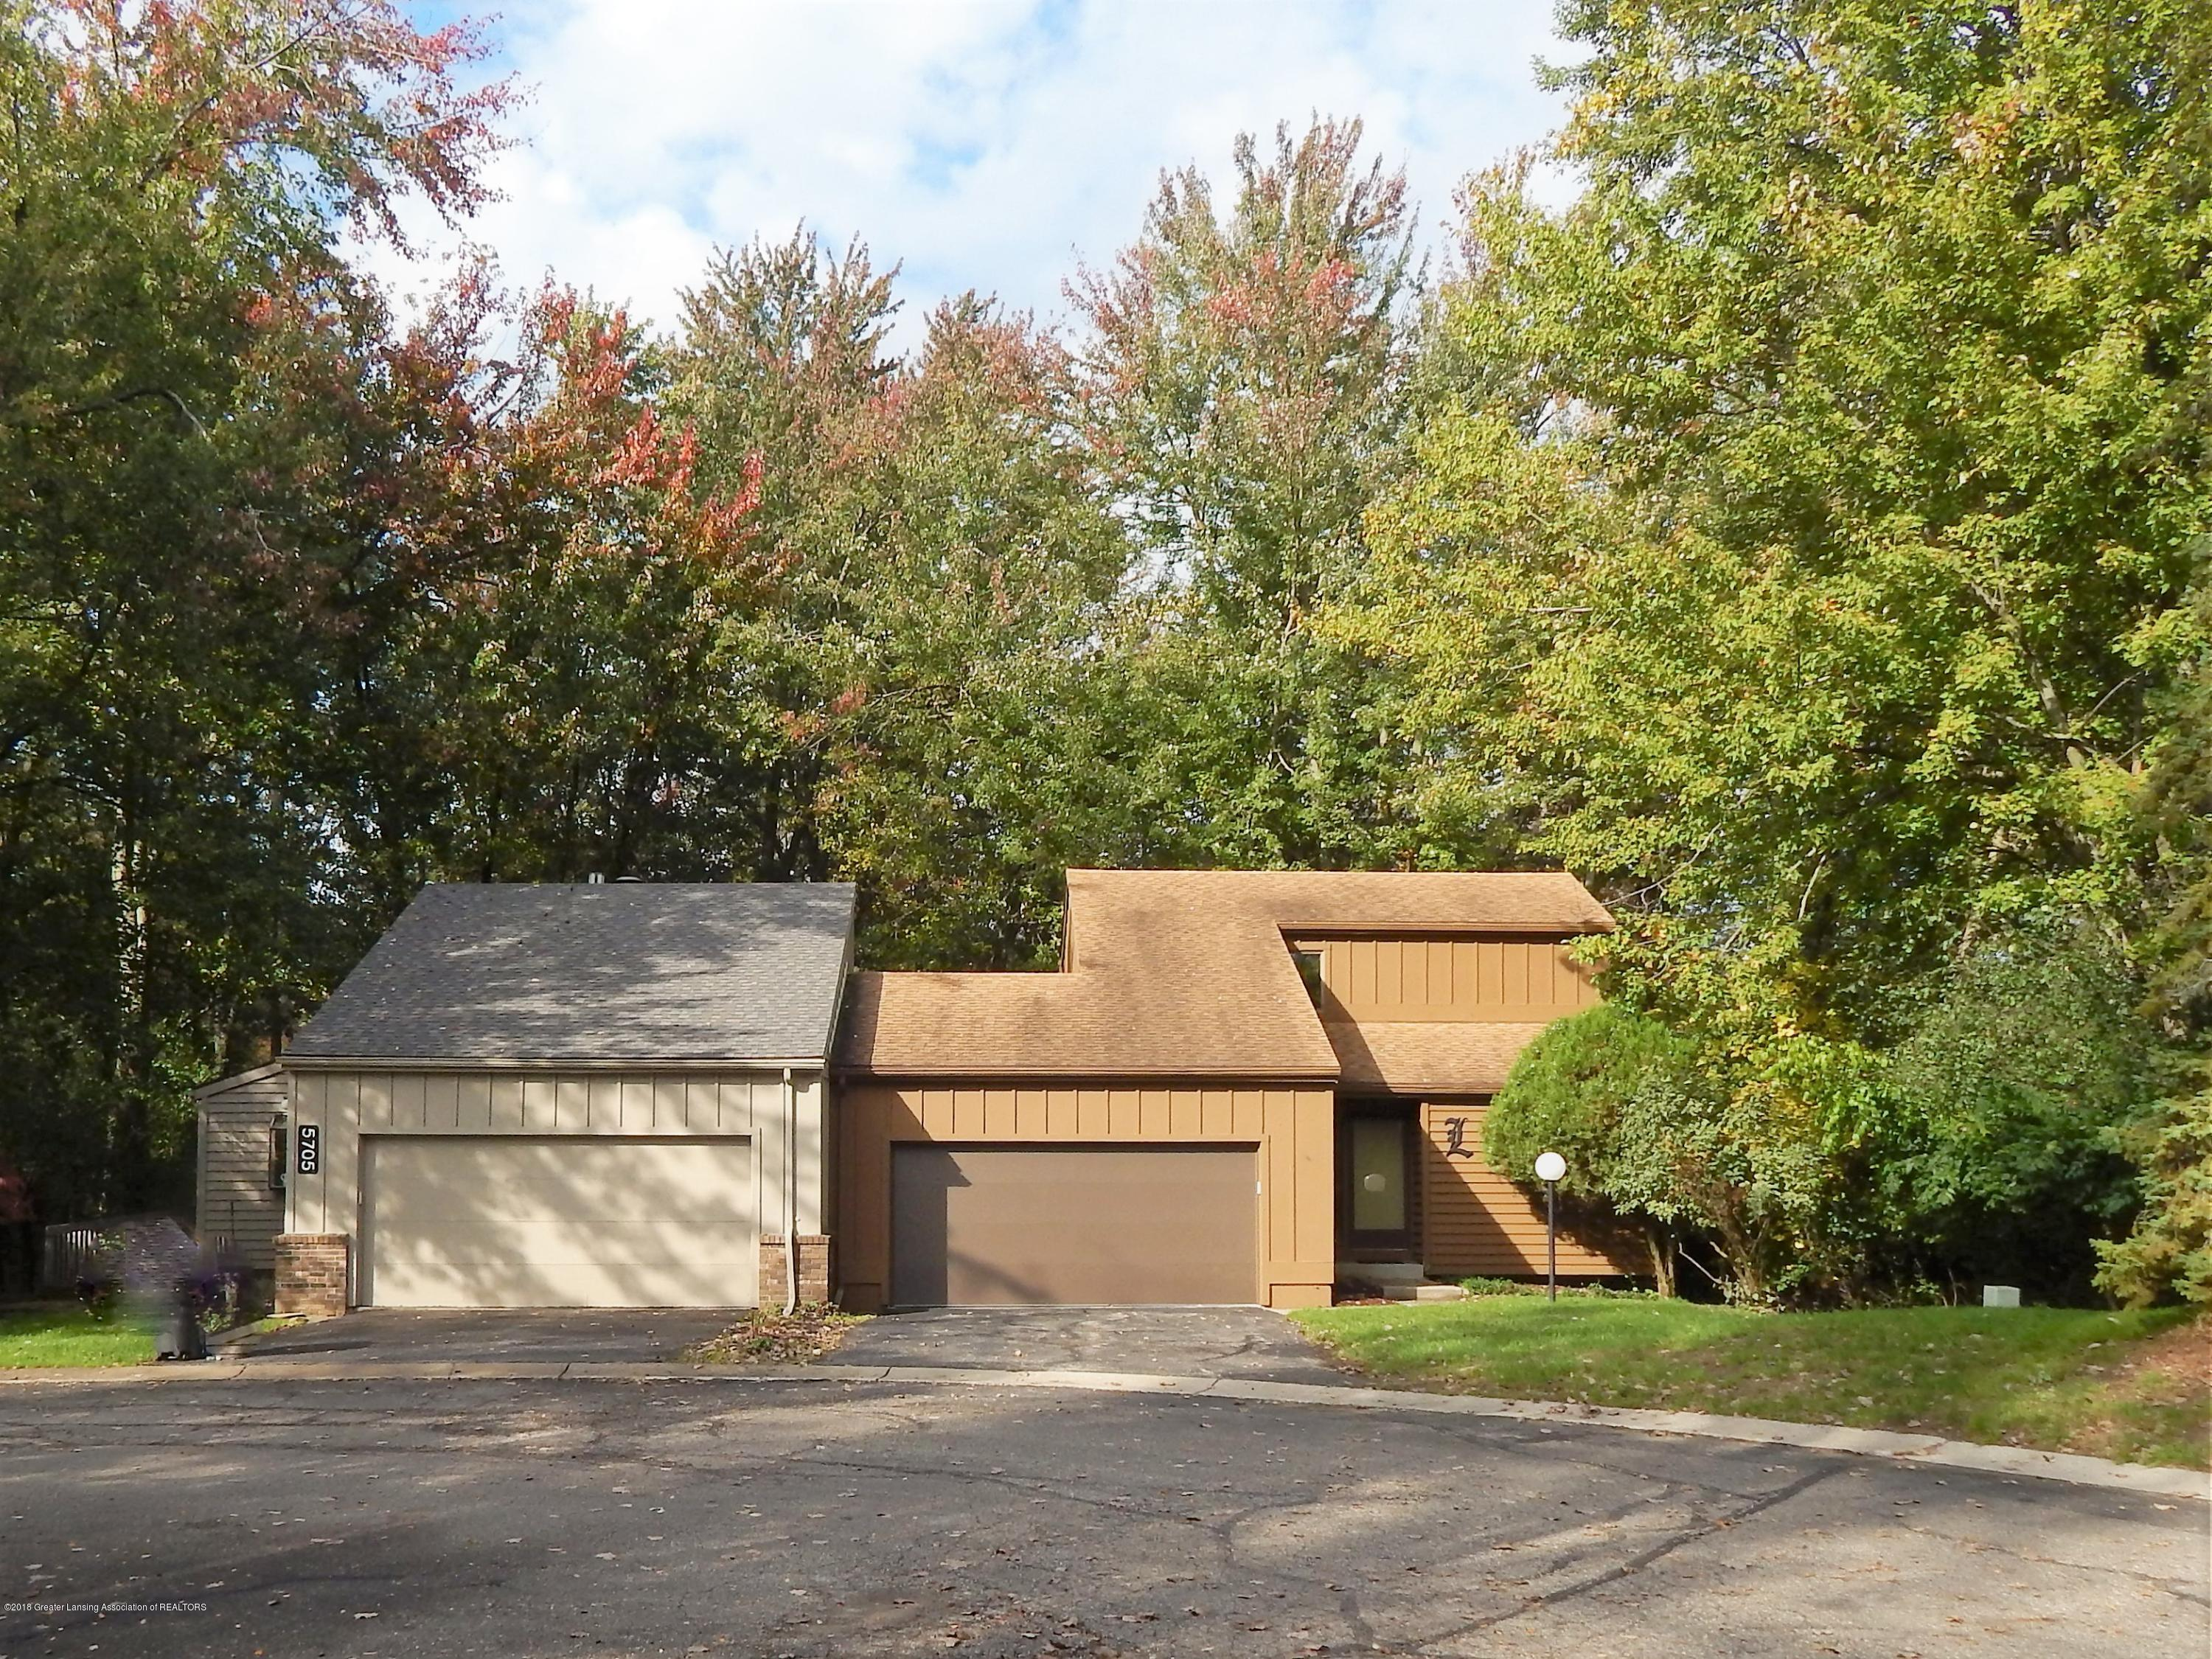 5707 Paige Ct 2 - Welcome to 5707 Paige Court - 1